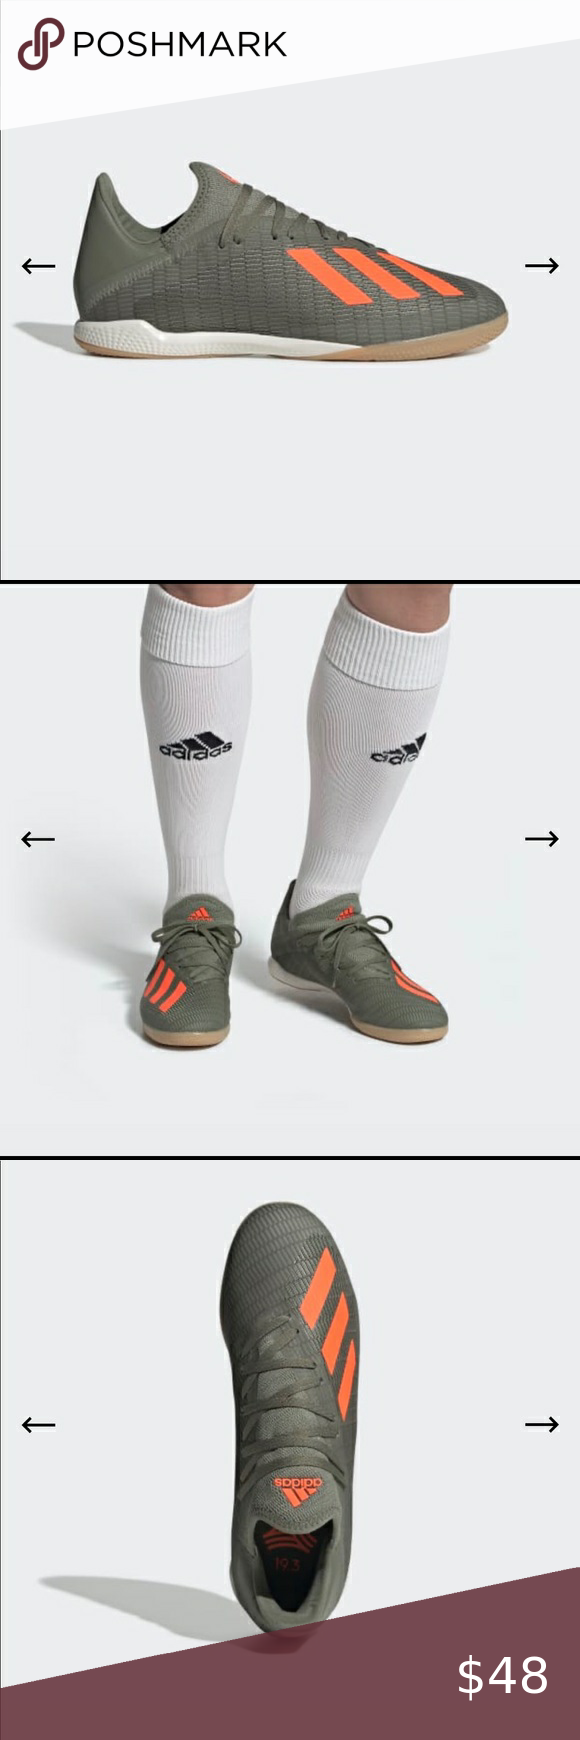 Adidas Soccer Shoes Nib Adidas X 19 3 Indoor Soccer Shoes For Men Color Is Legacy Green Solar Orange Chalk W In 2020 Adidas Soccer Shoes Soccer Shoes Adidas Soccer